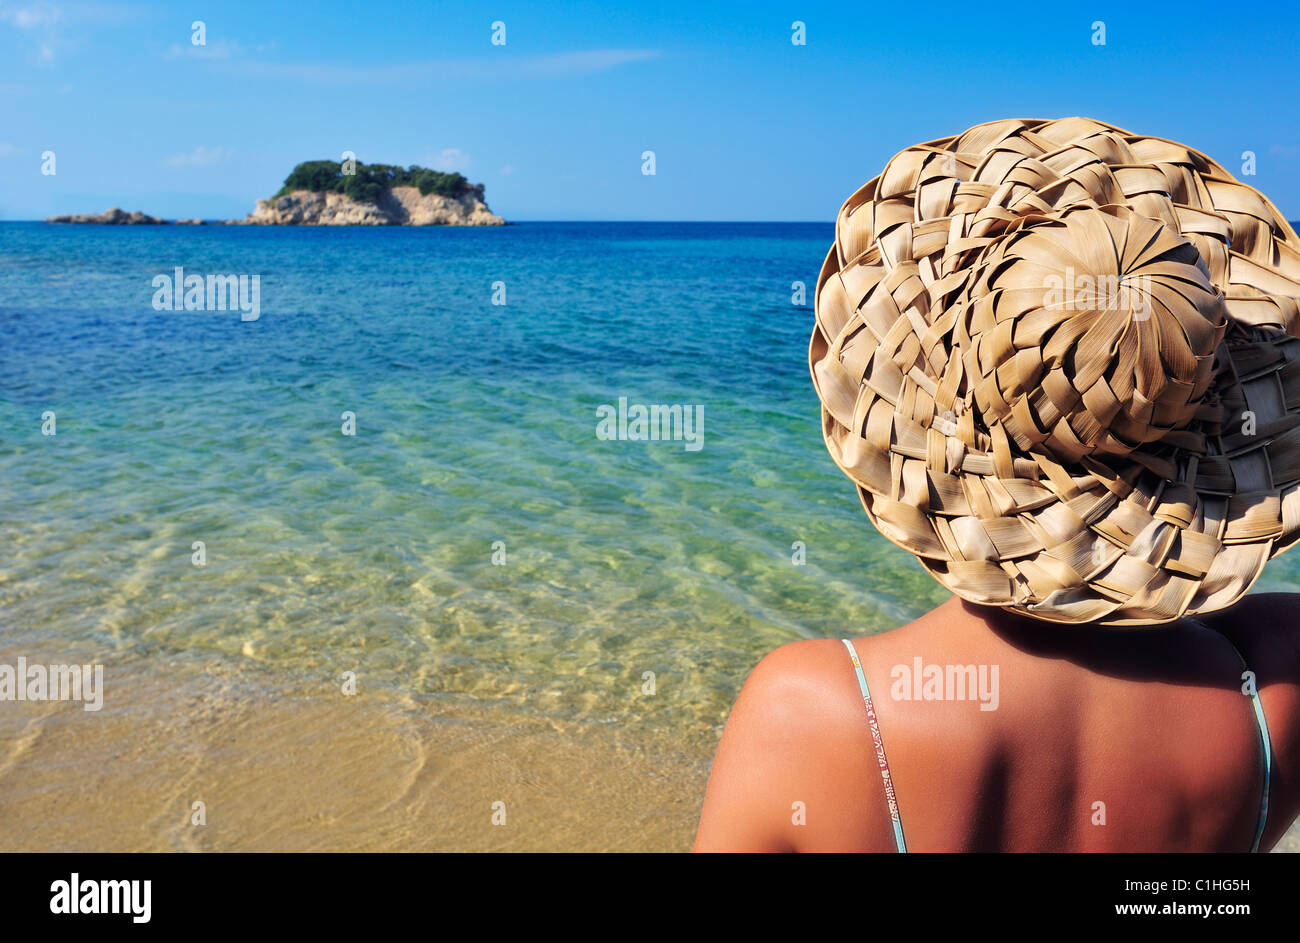 Closeup image of a young woman in a straw hat and bikini, looking at a tiny island in the Mediterranean - Stock Image